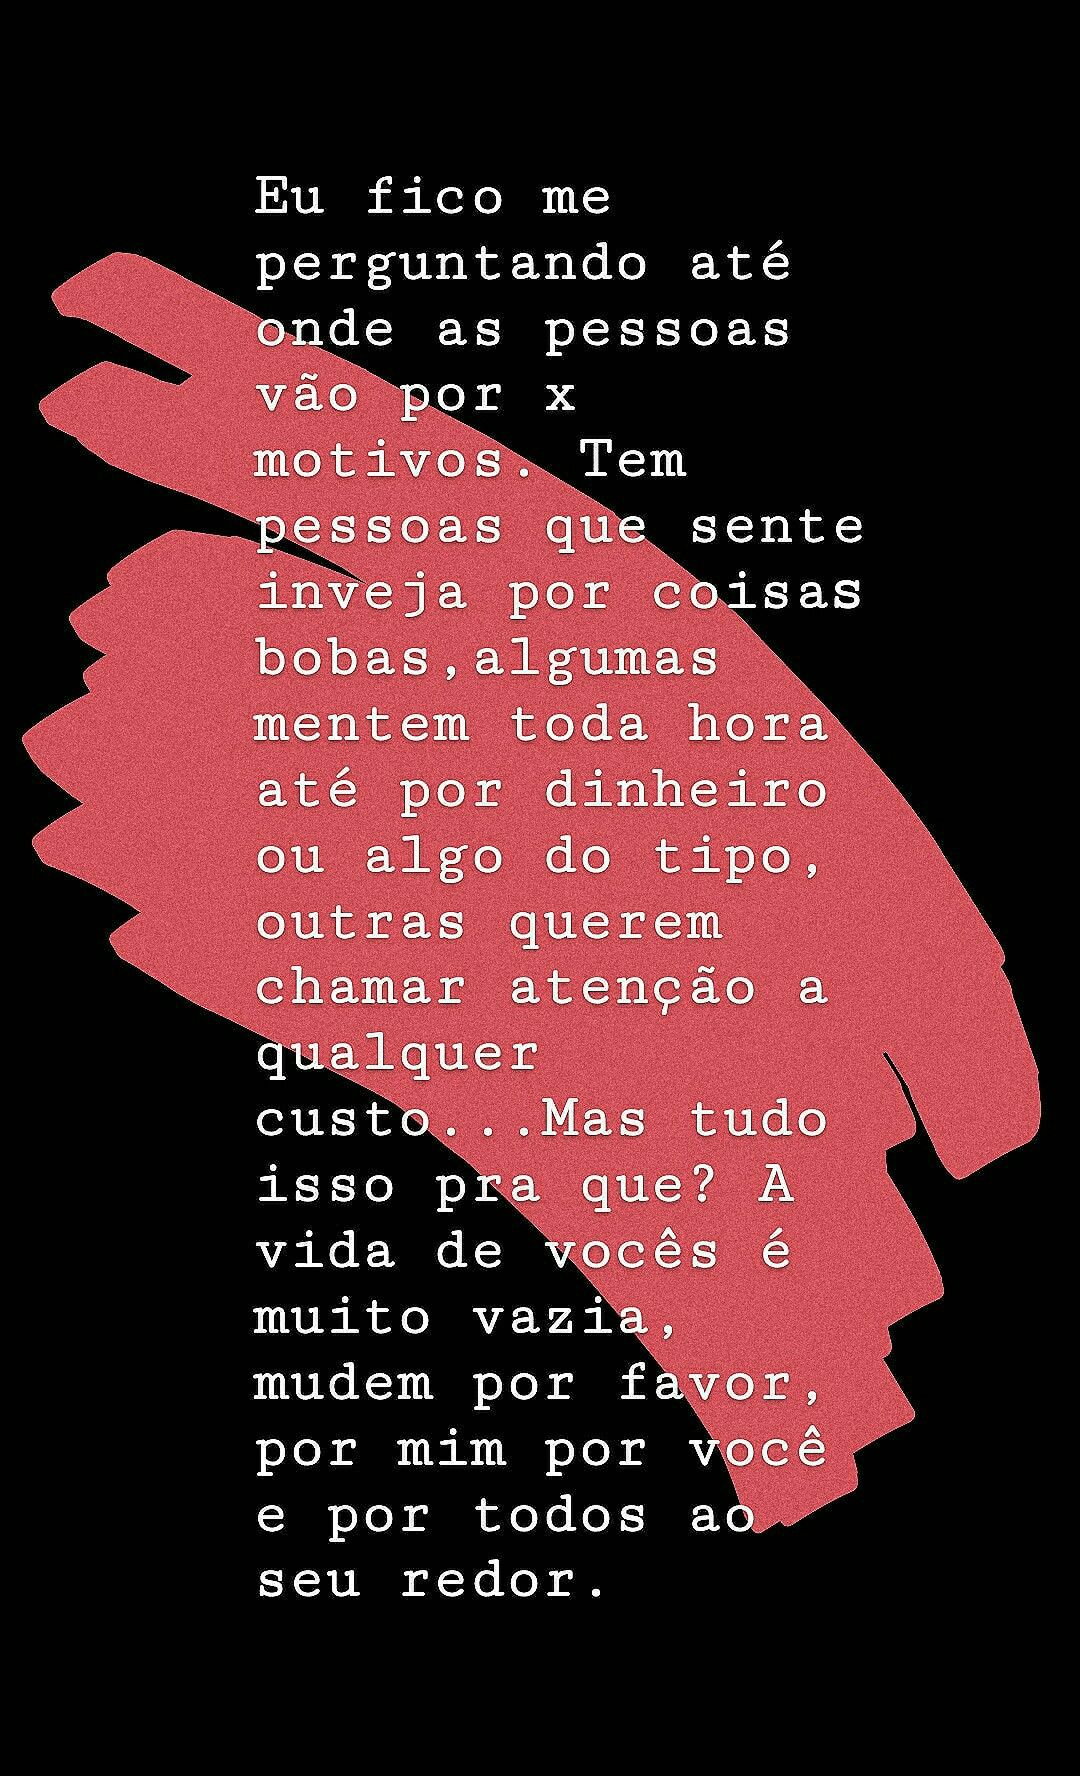 Anaranucciiphrases Feelings Frase Tumblr Photo Brasil Pt